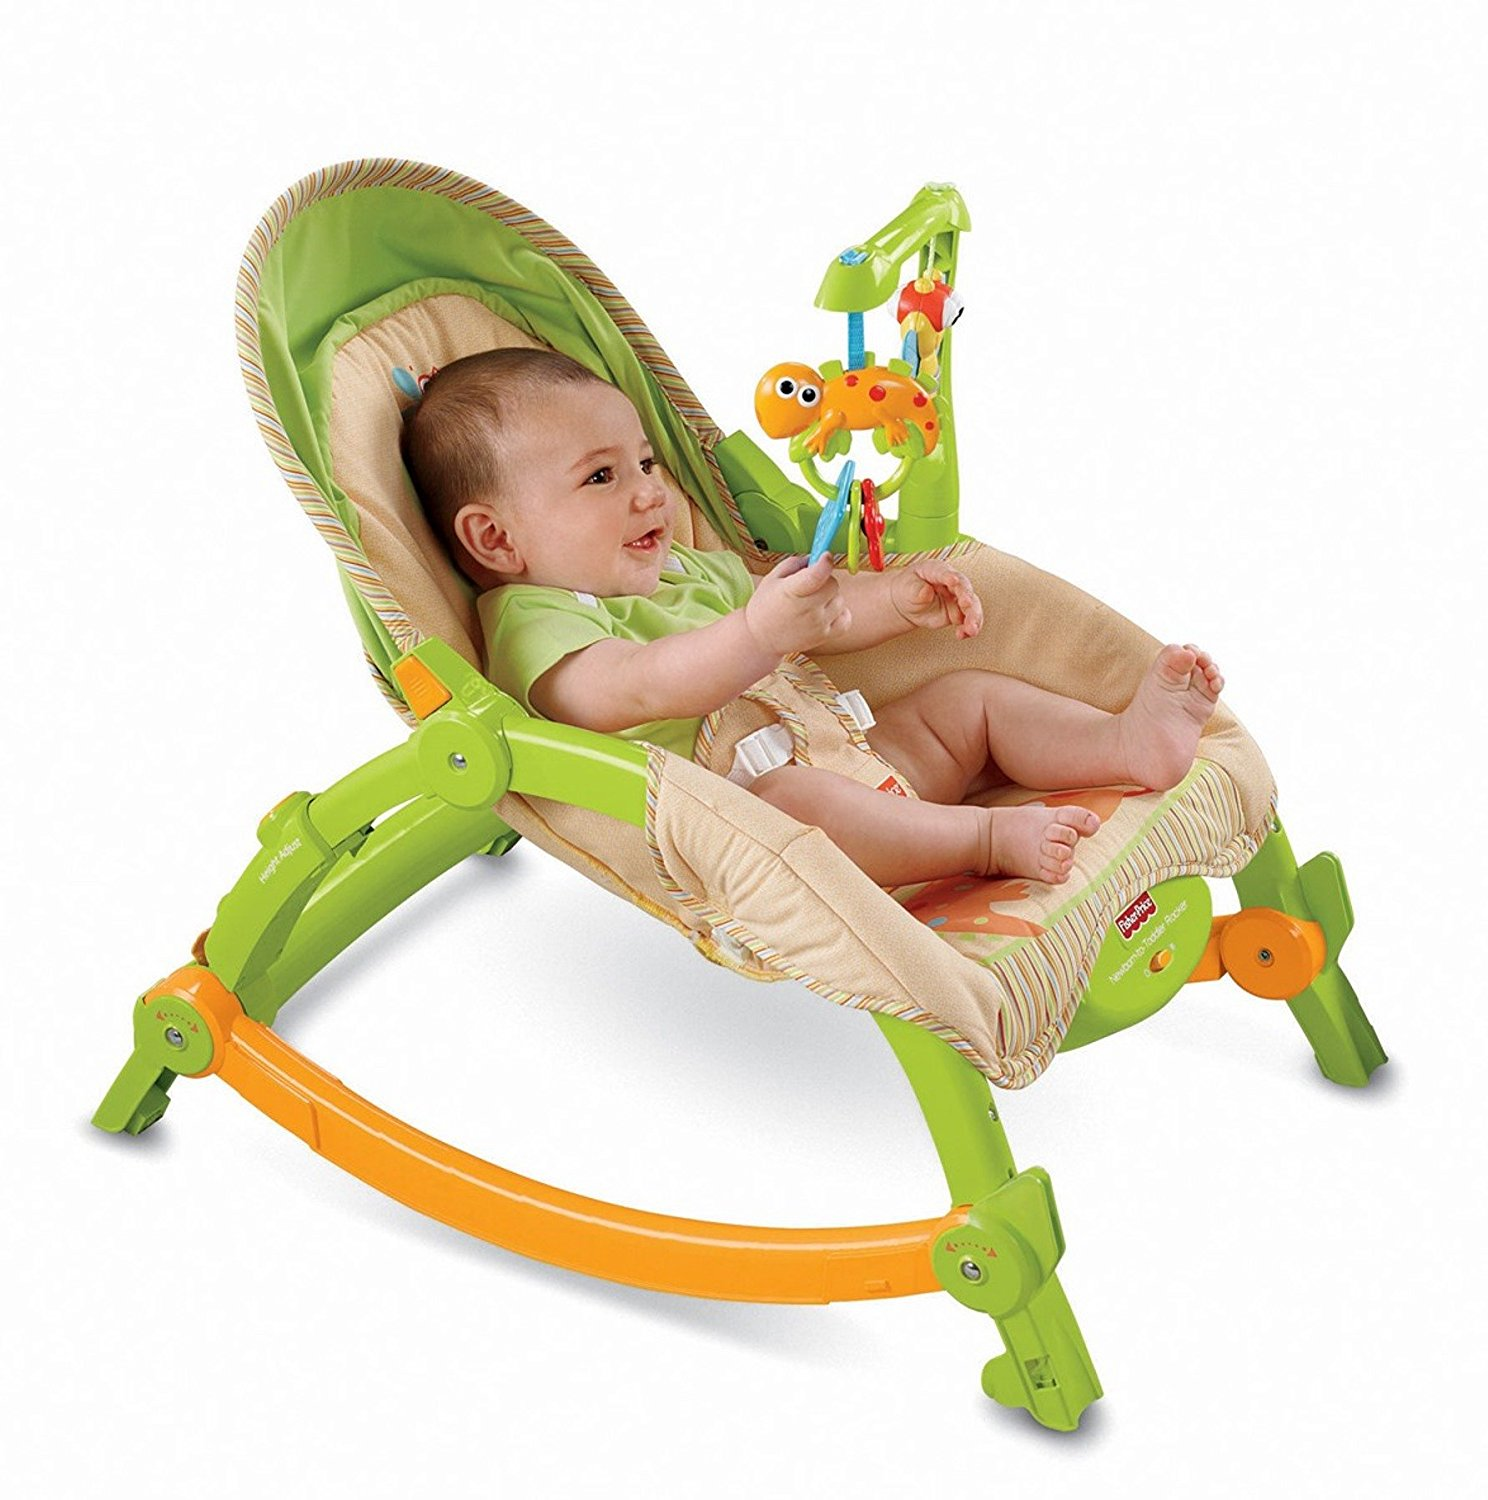 Newborn-to-Toddler Portable Rocker, USA, Brand Fisher-Price